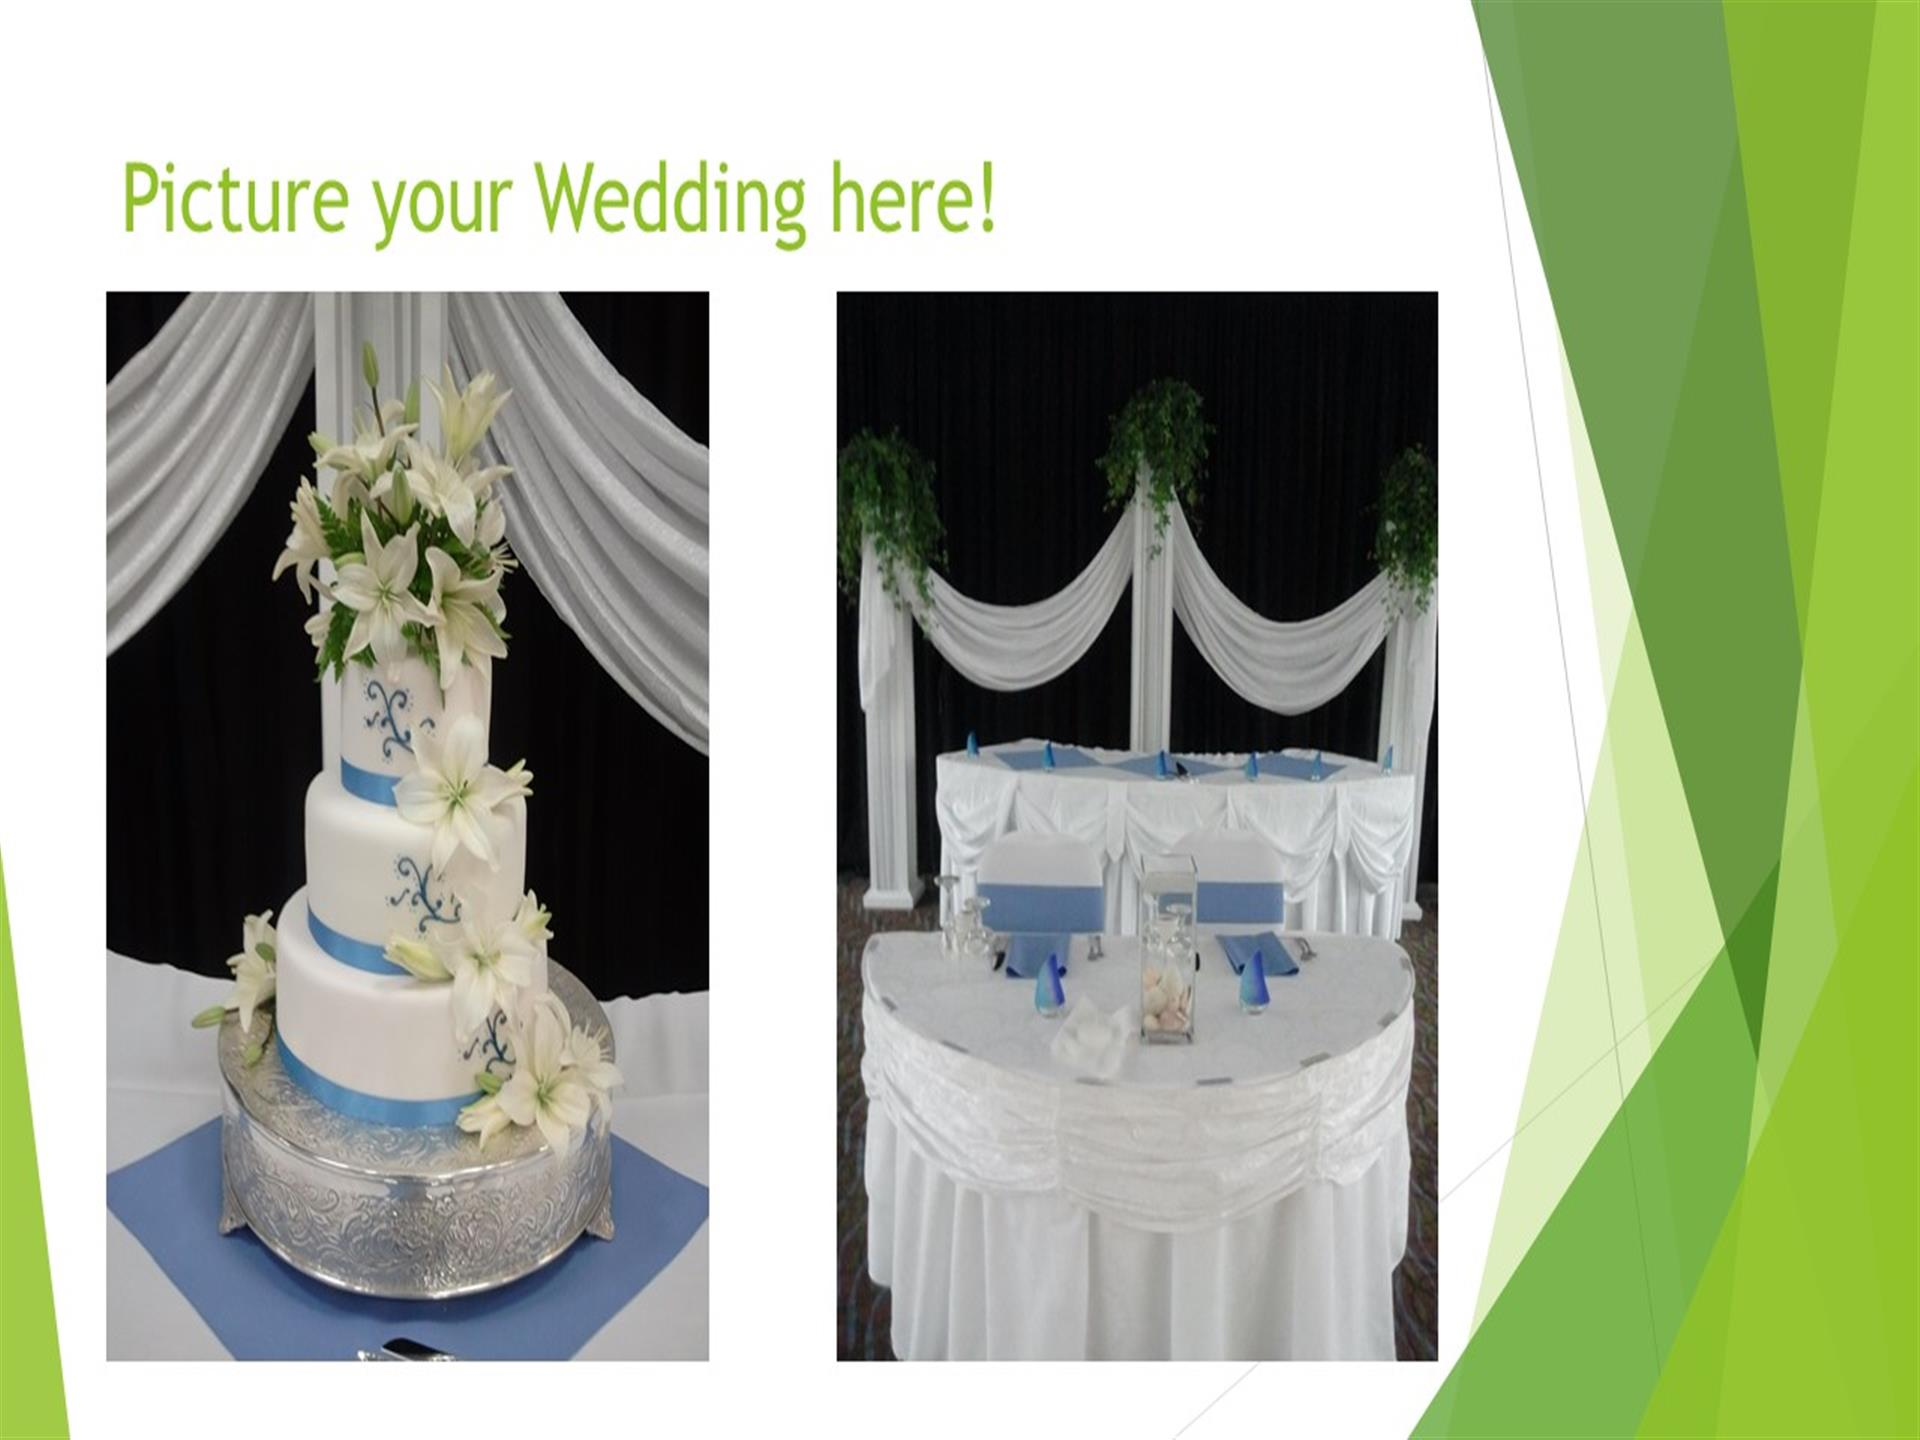 Picture your wedding here - wedding cakes on white table